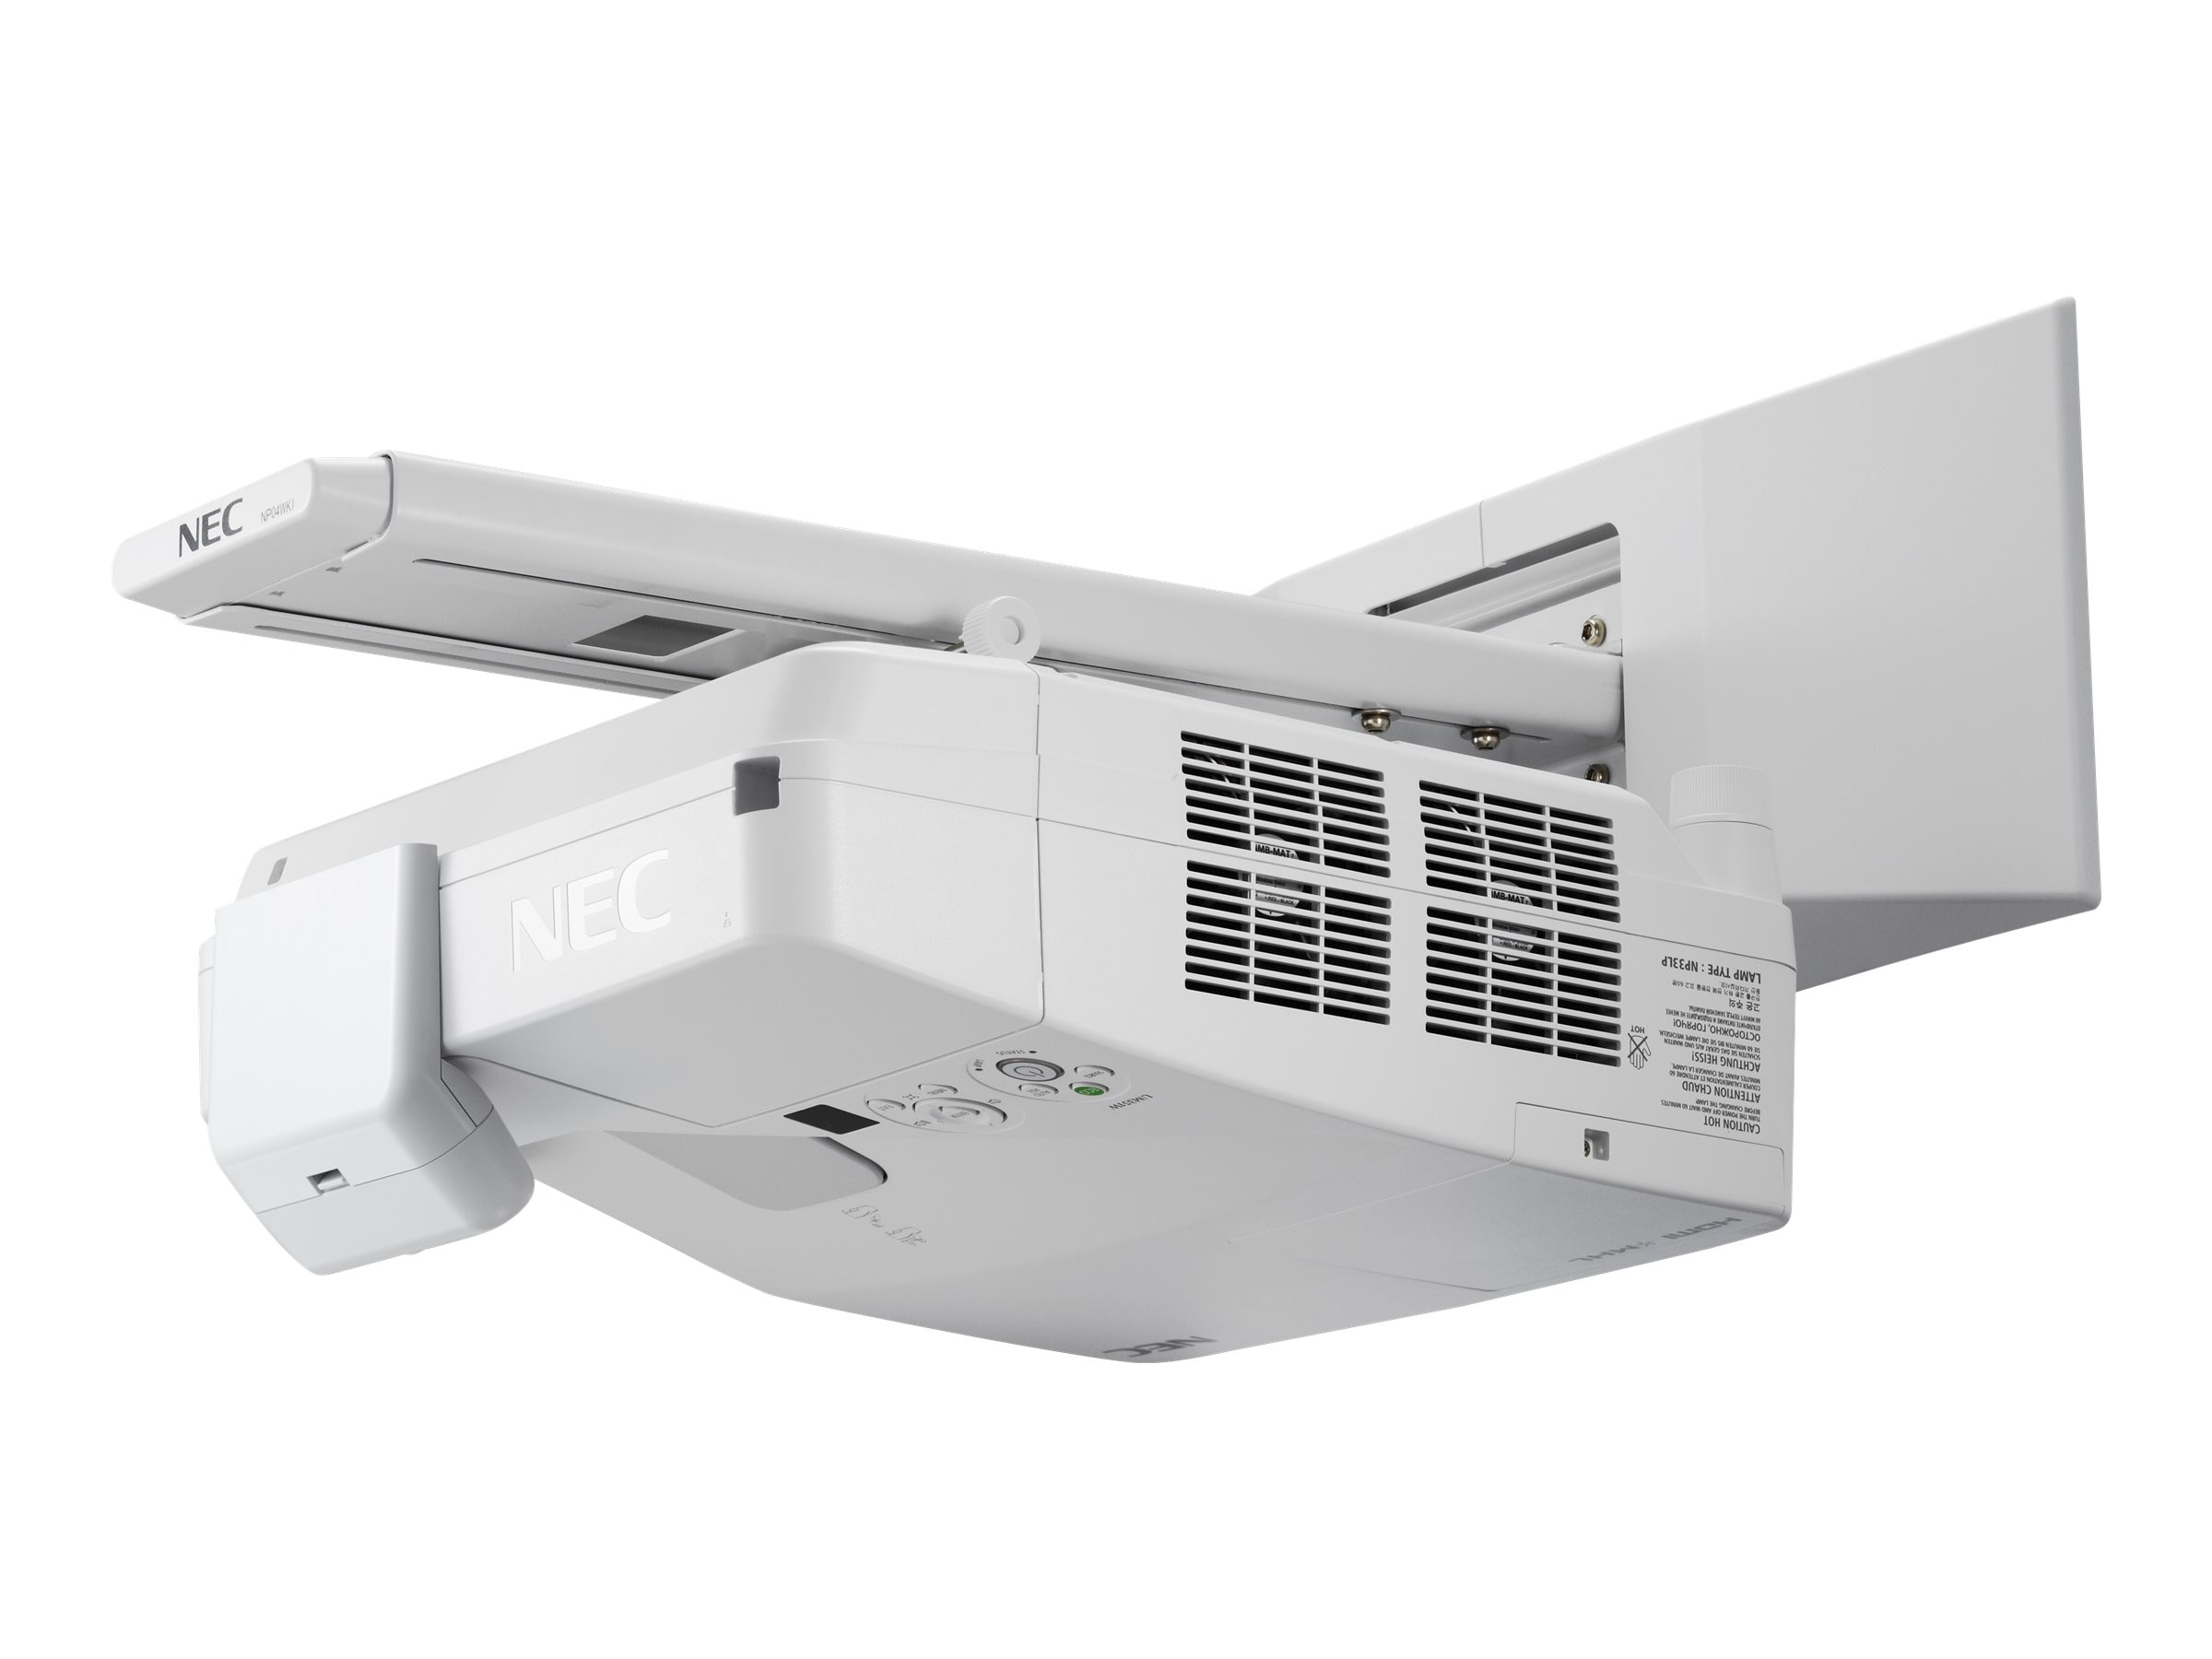 NEC UM361X Ultra Short Throw LCD Projector, 3600 Lumens, White with Wall Mount, Interactive Module, Pens